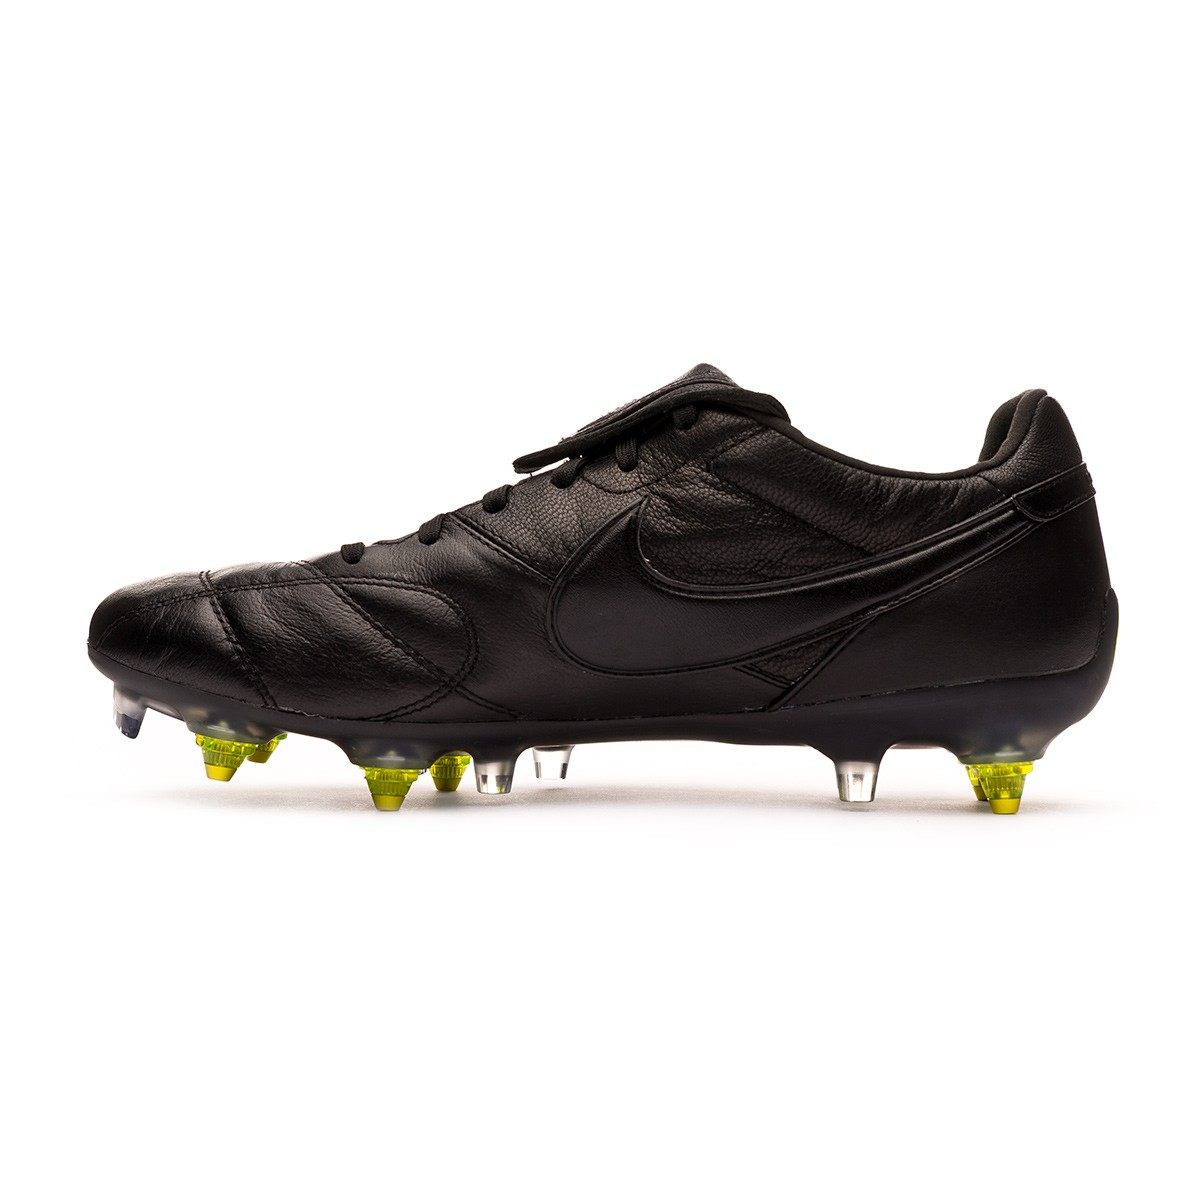 premium selection 90197 f8c74 Chaussure de foot Nike Tiempo Premier II Anti-Clog Traction SG-Pro Black -  Boutique de football Fútbol Emotion